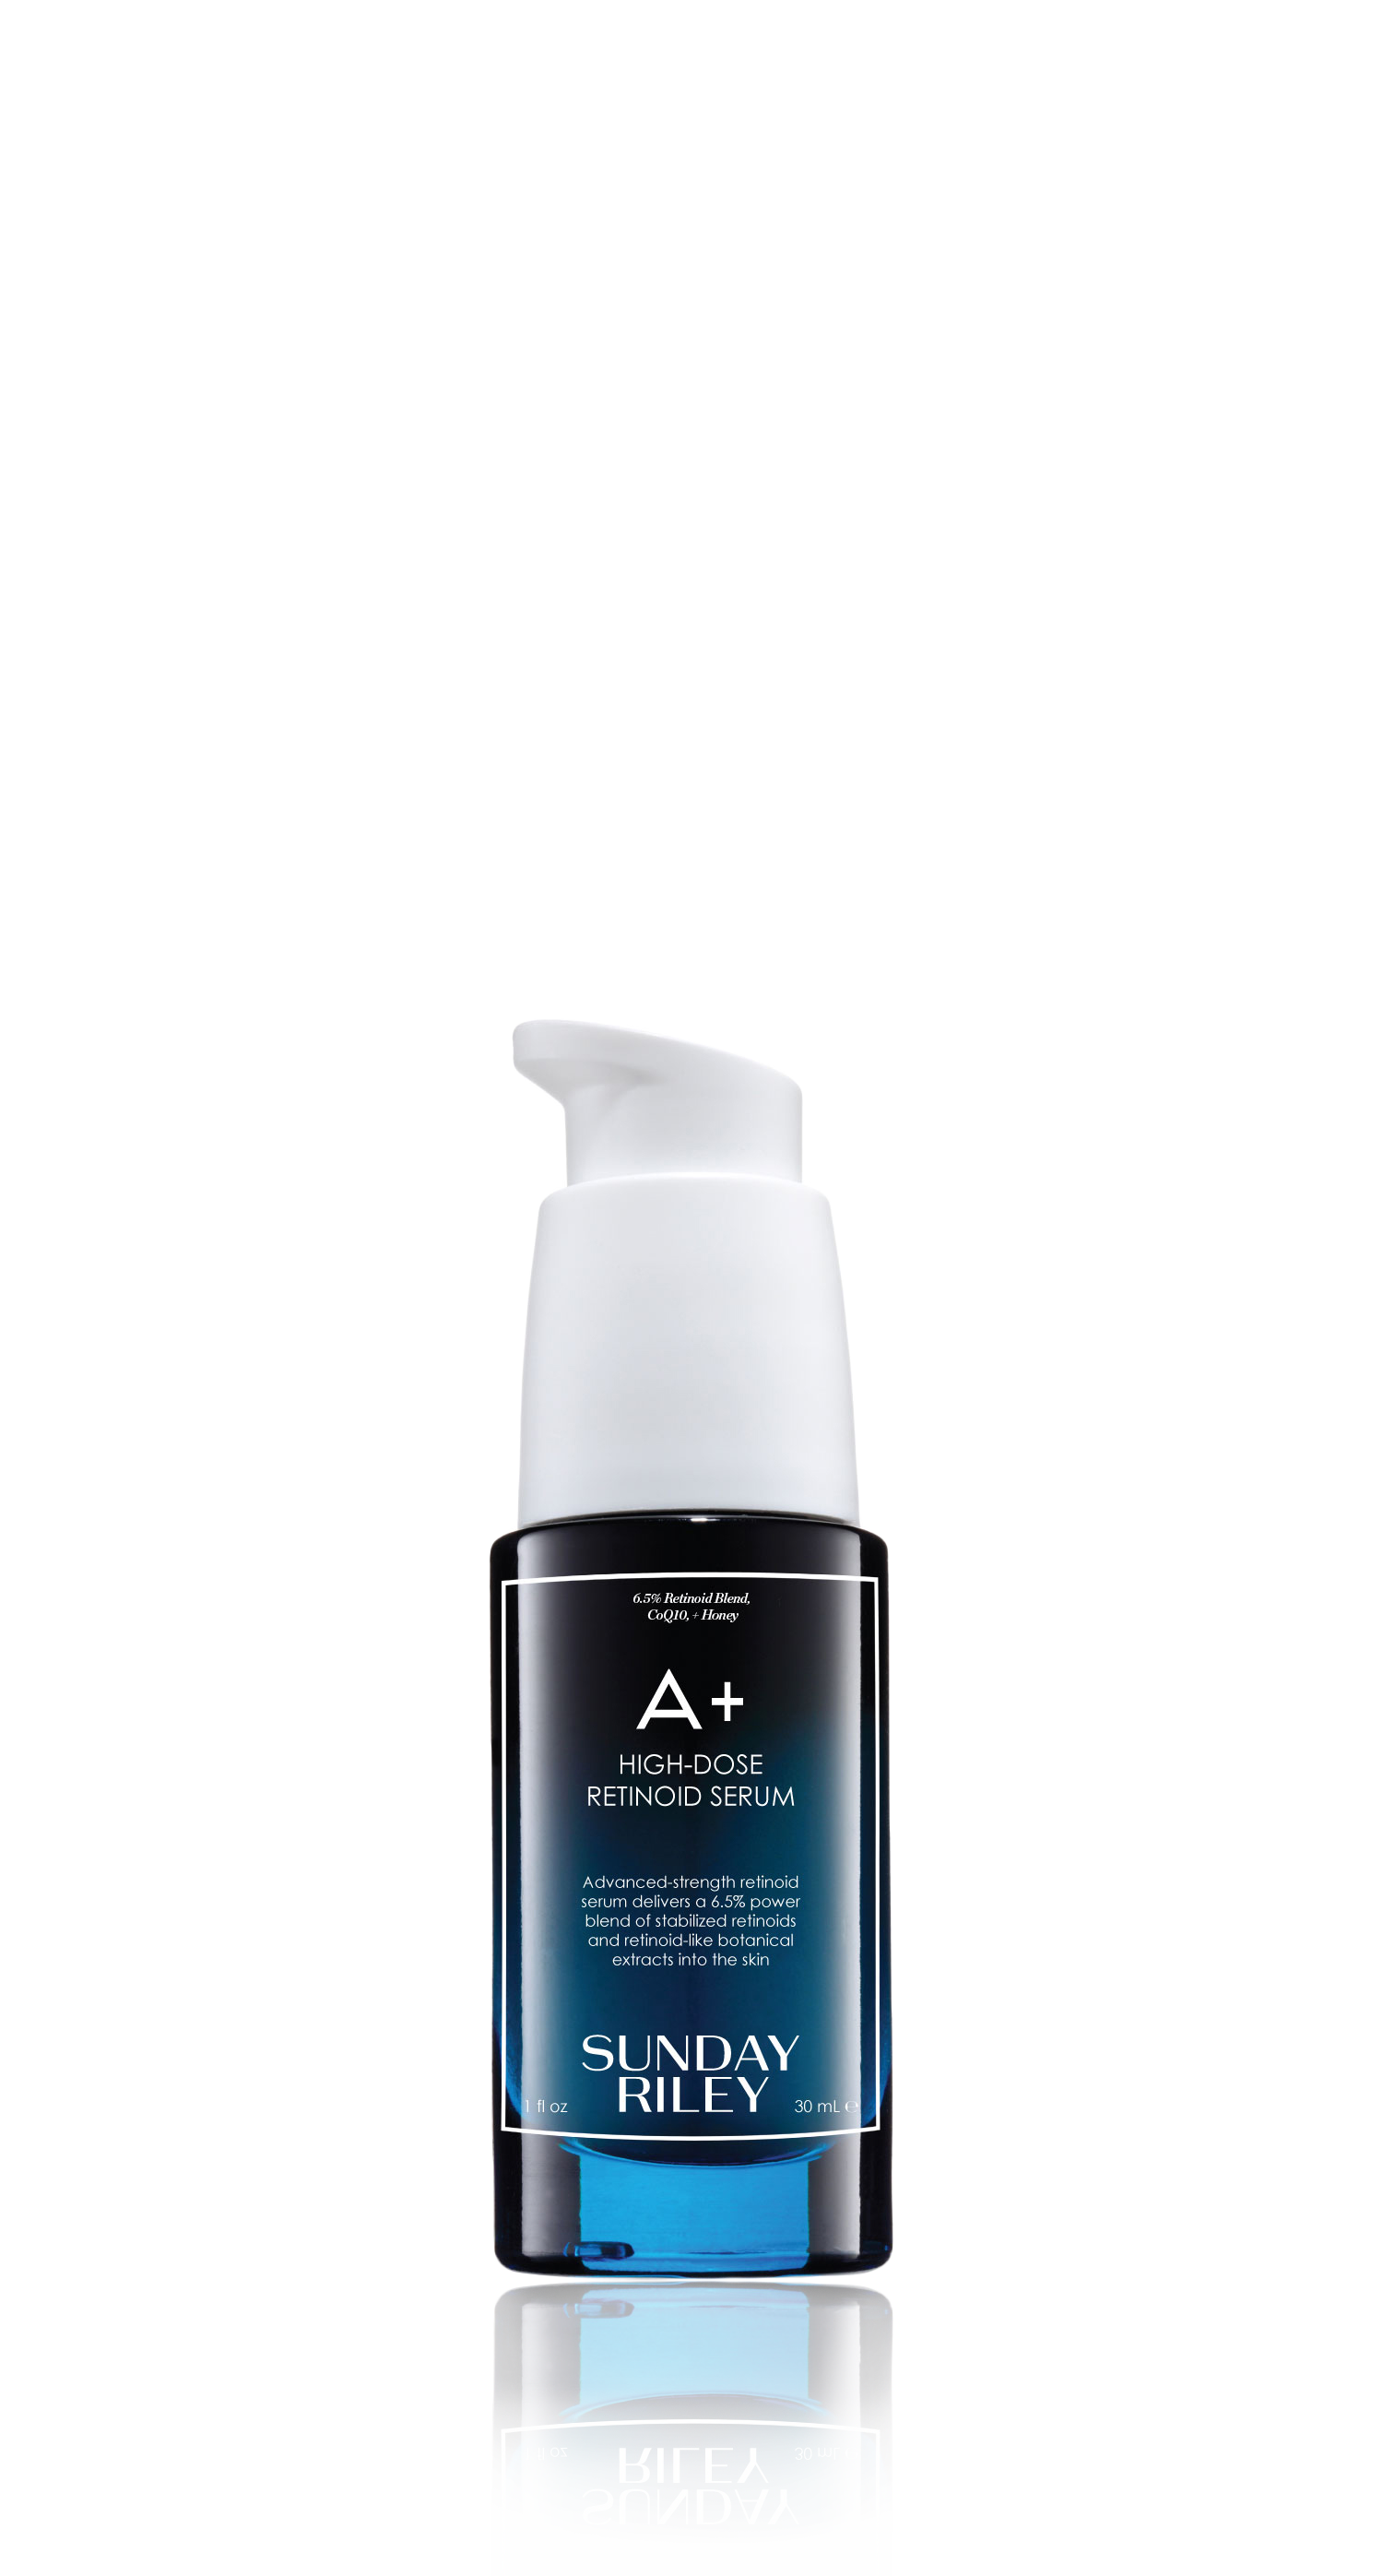 A+ High-Dose Retinoid Serum